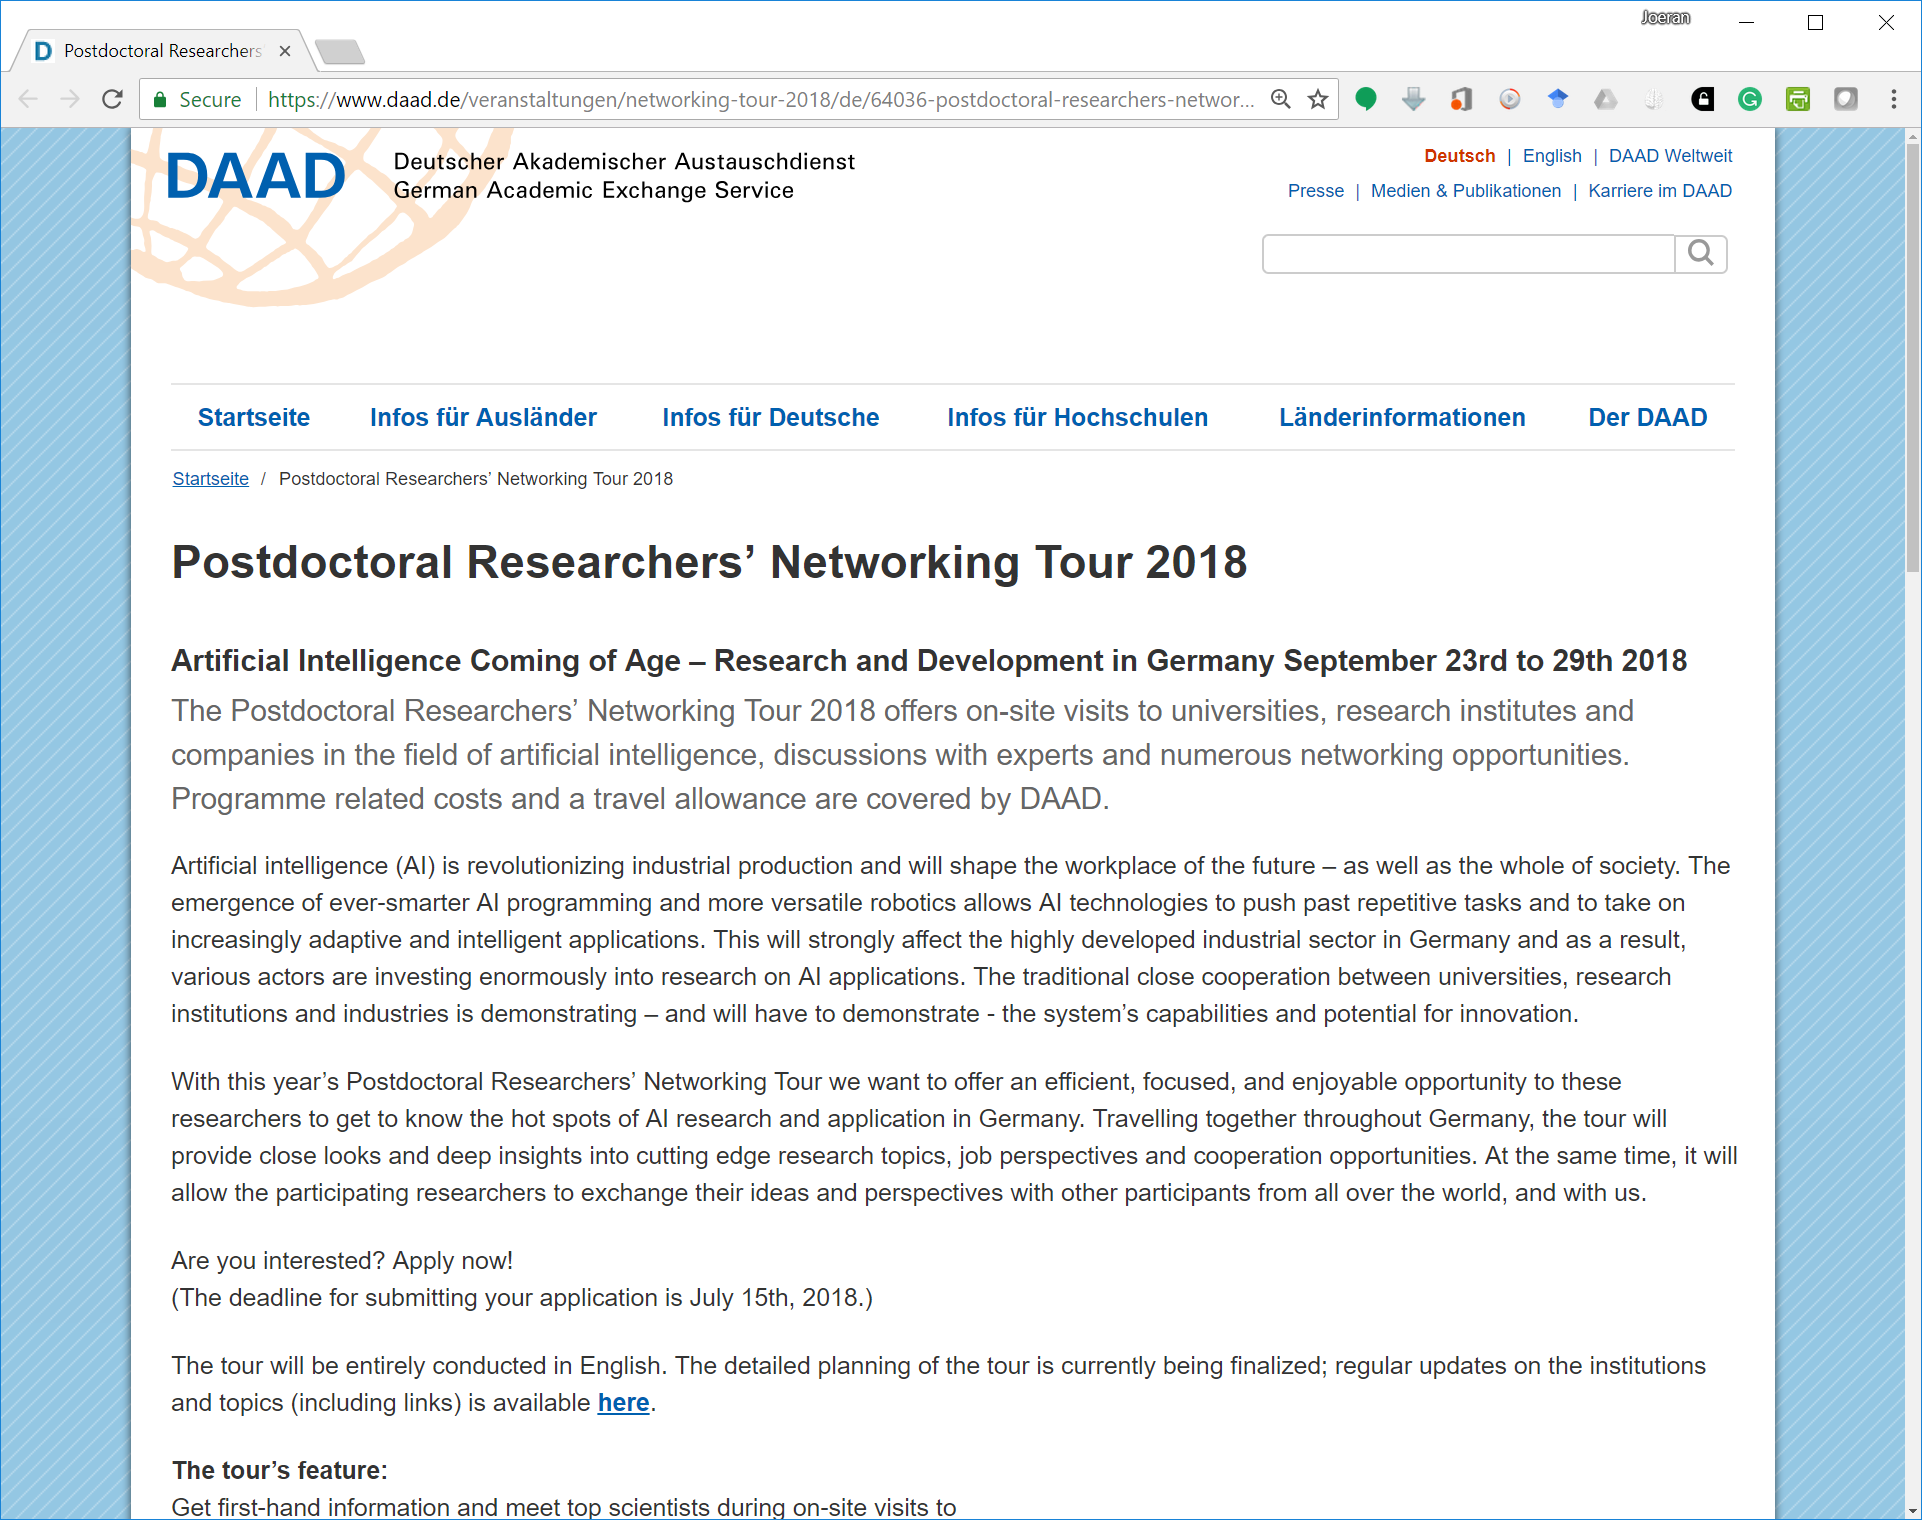 DAAD Artificial Intelligence / Machine Learning Tour Through Germany 2018